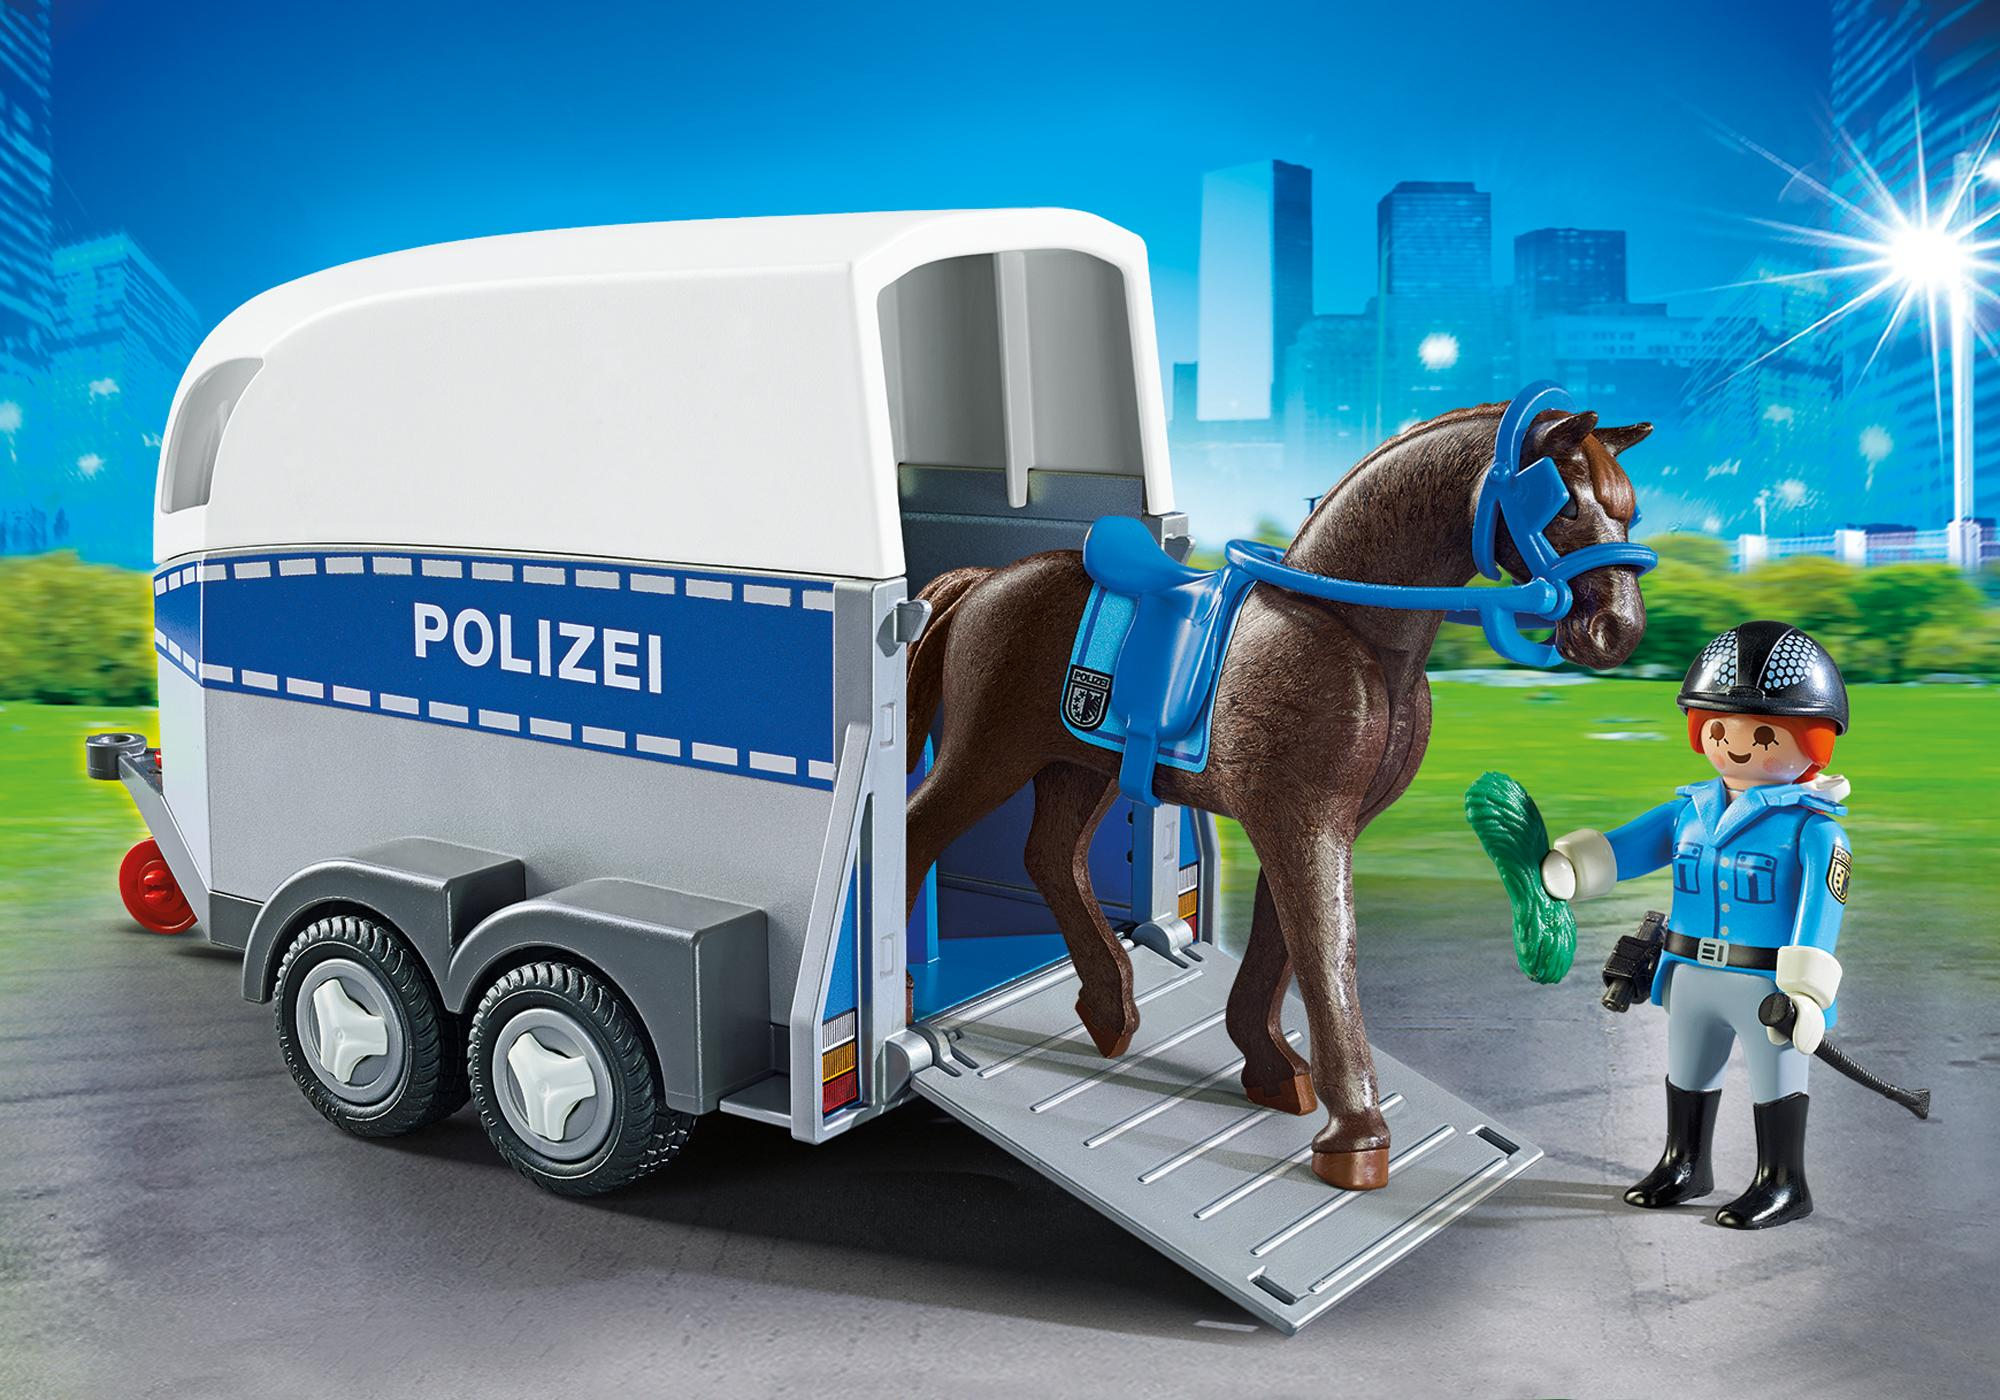 http://media.playmobil.com/i/playmobil/6875_product_detail